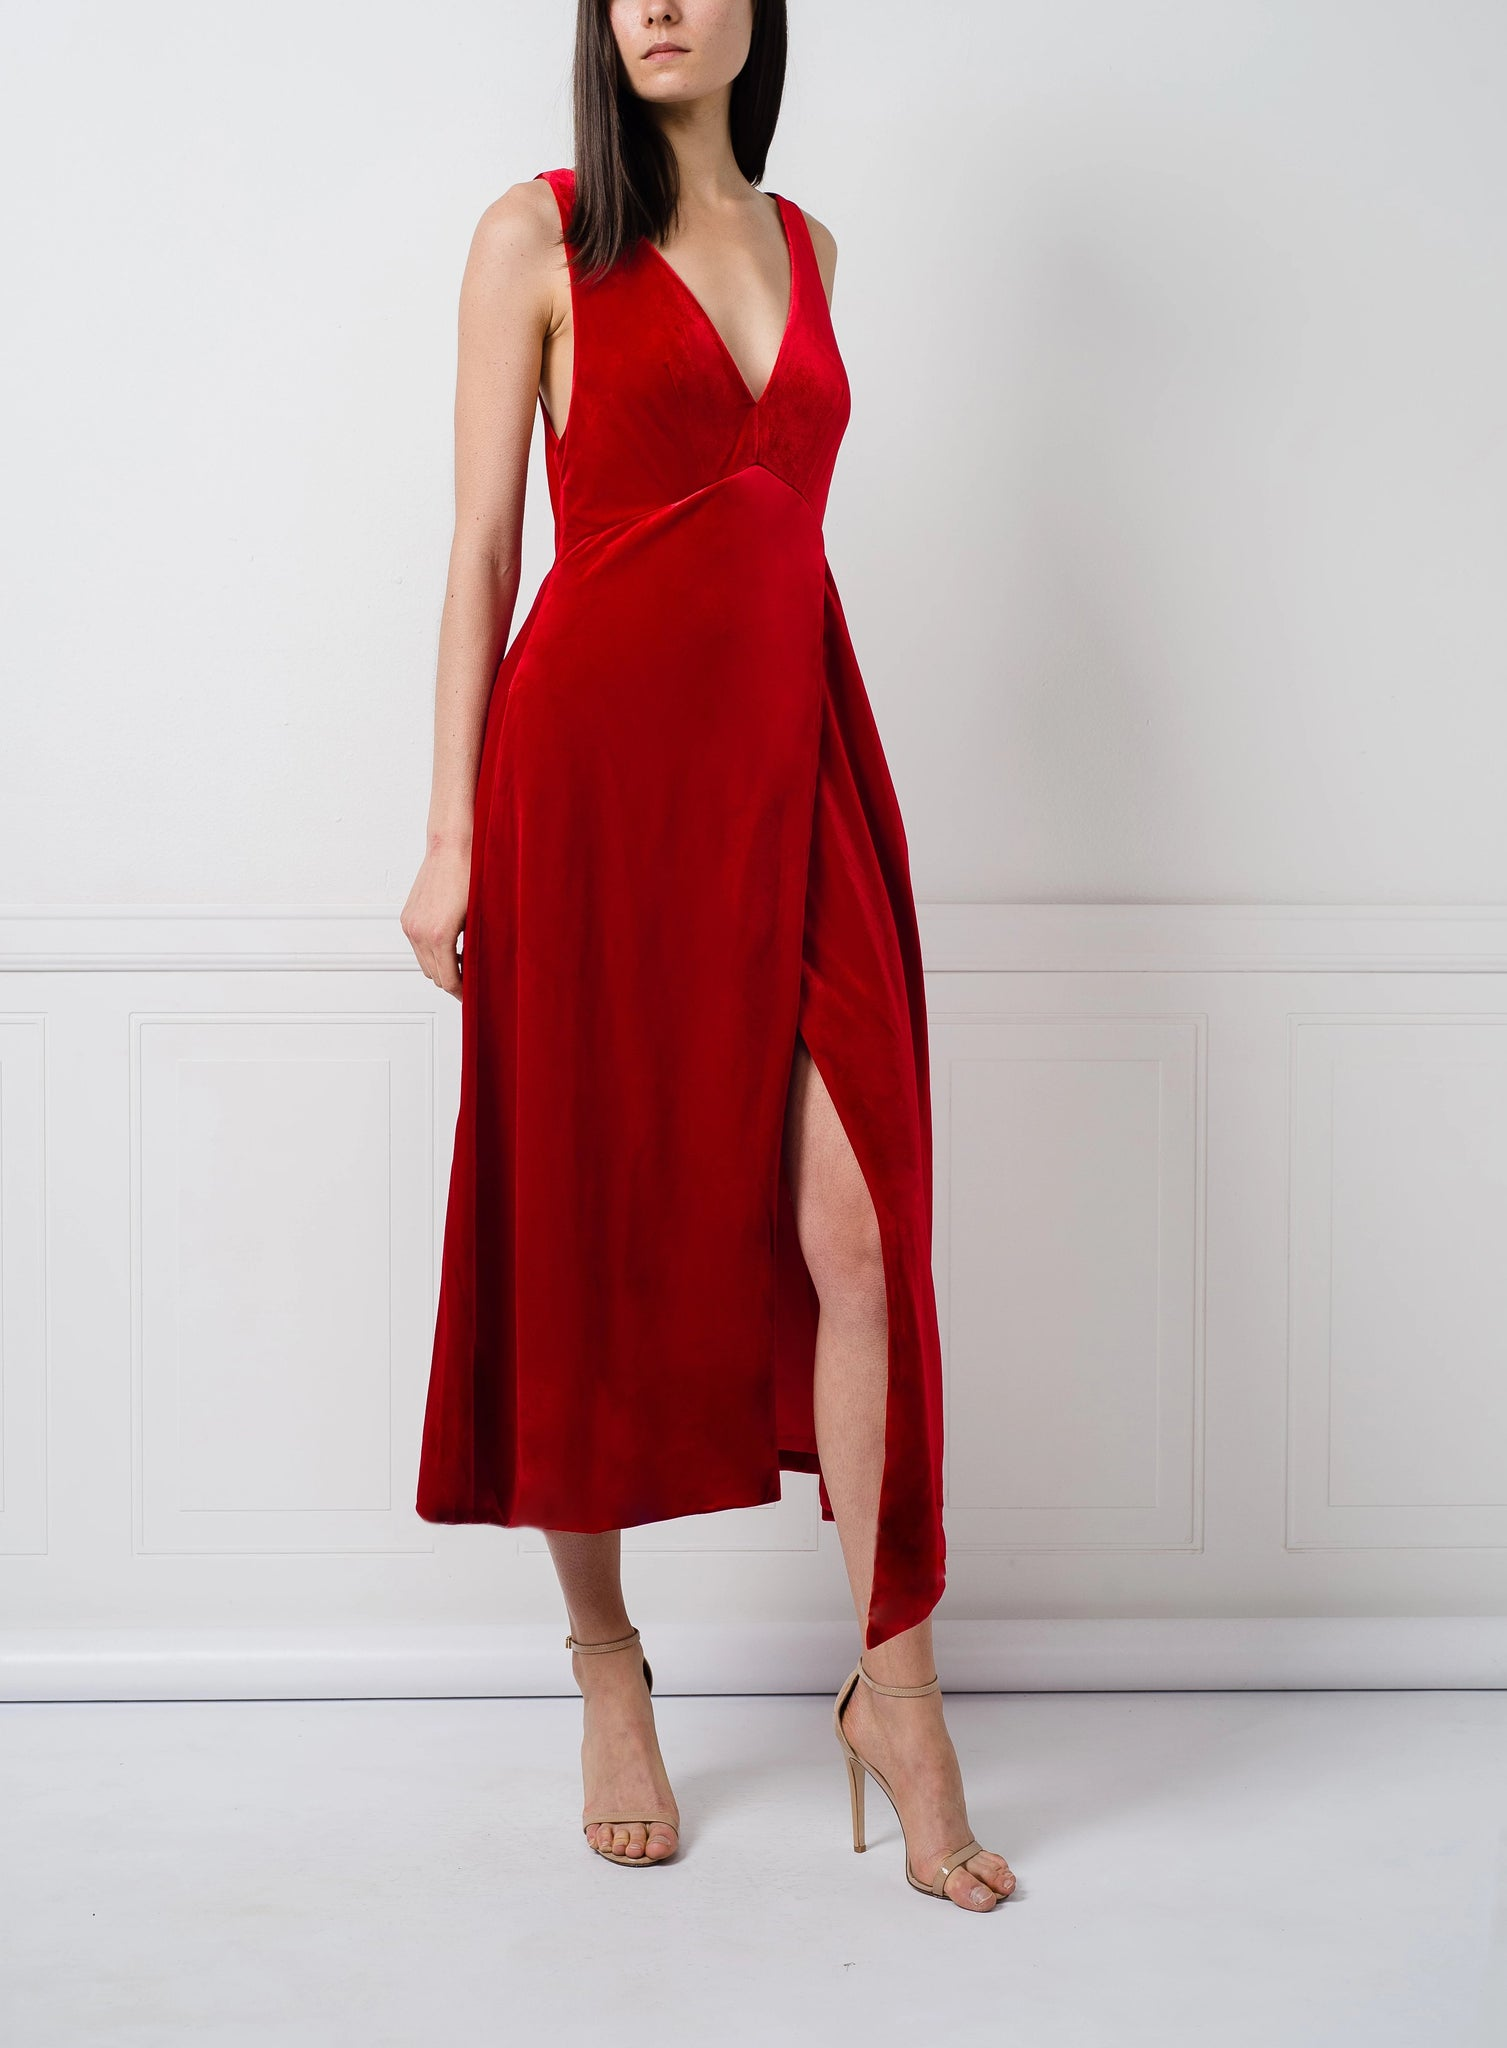 Maran Dress in Red Velvet